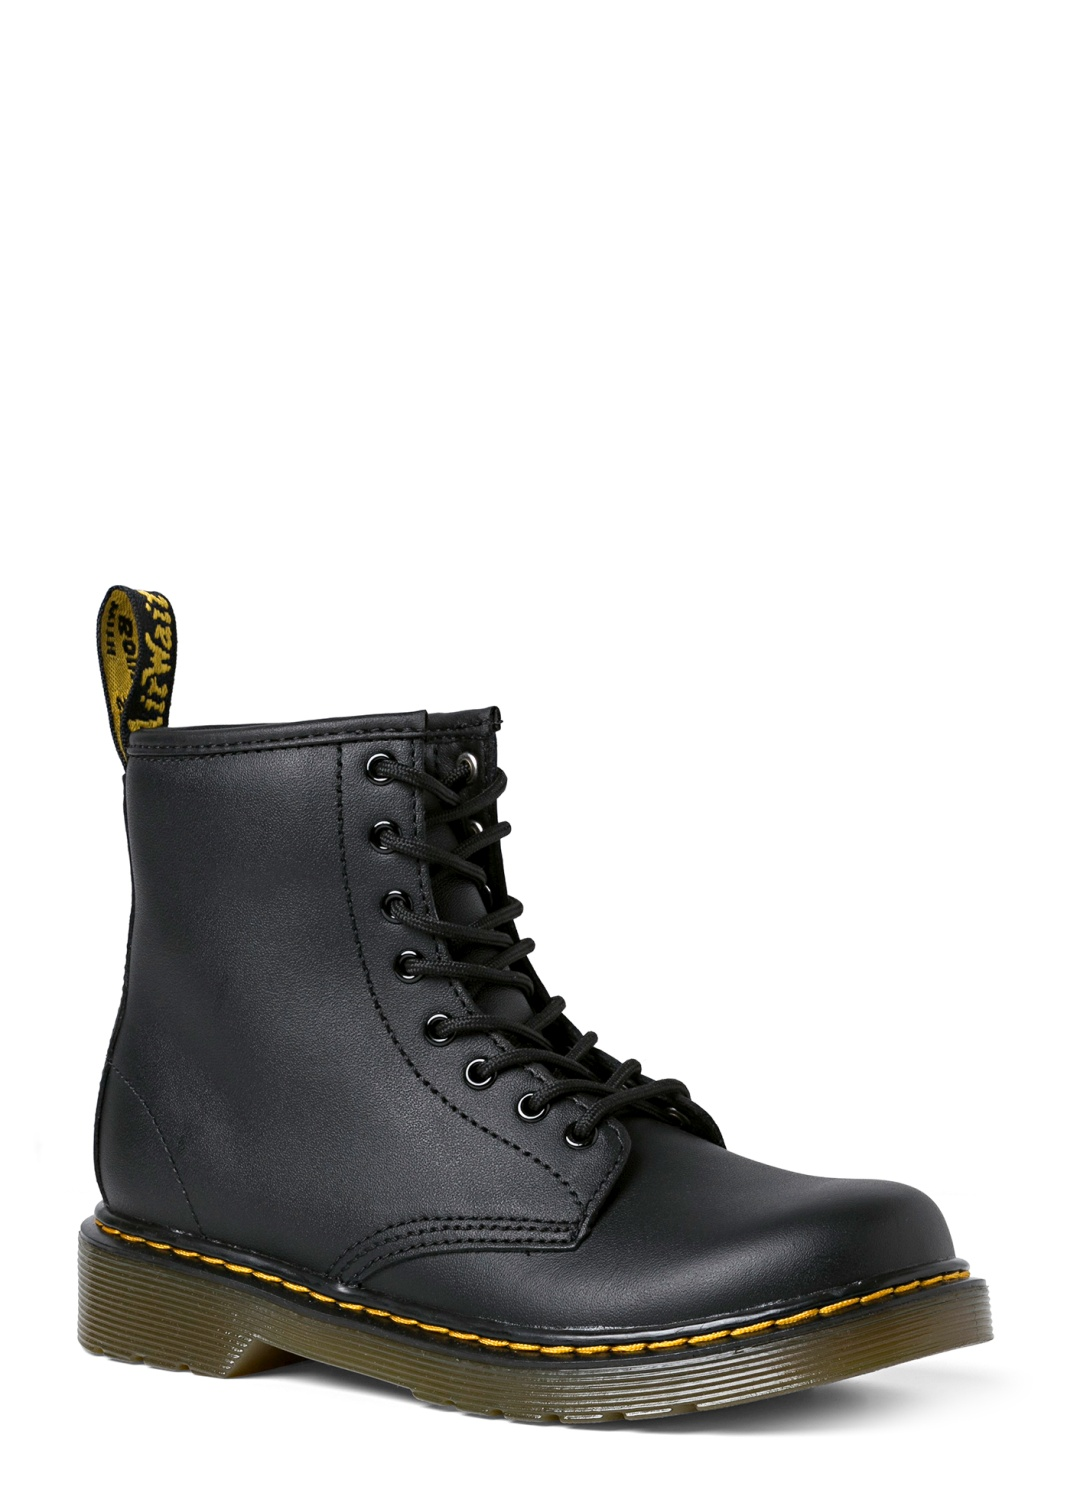 Juniors Lace Boot image number 1